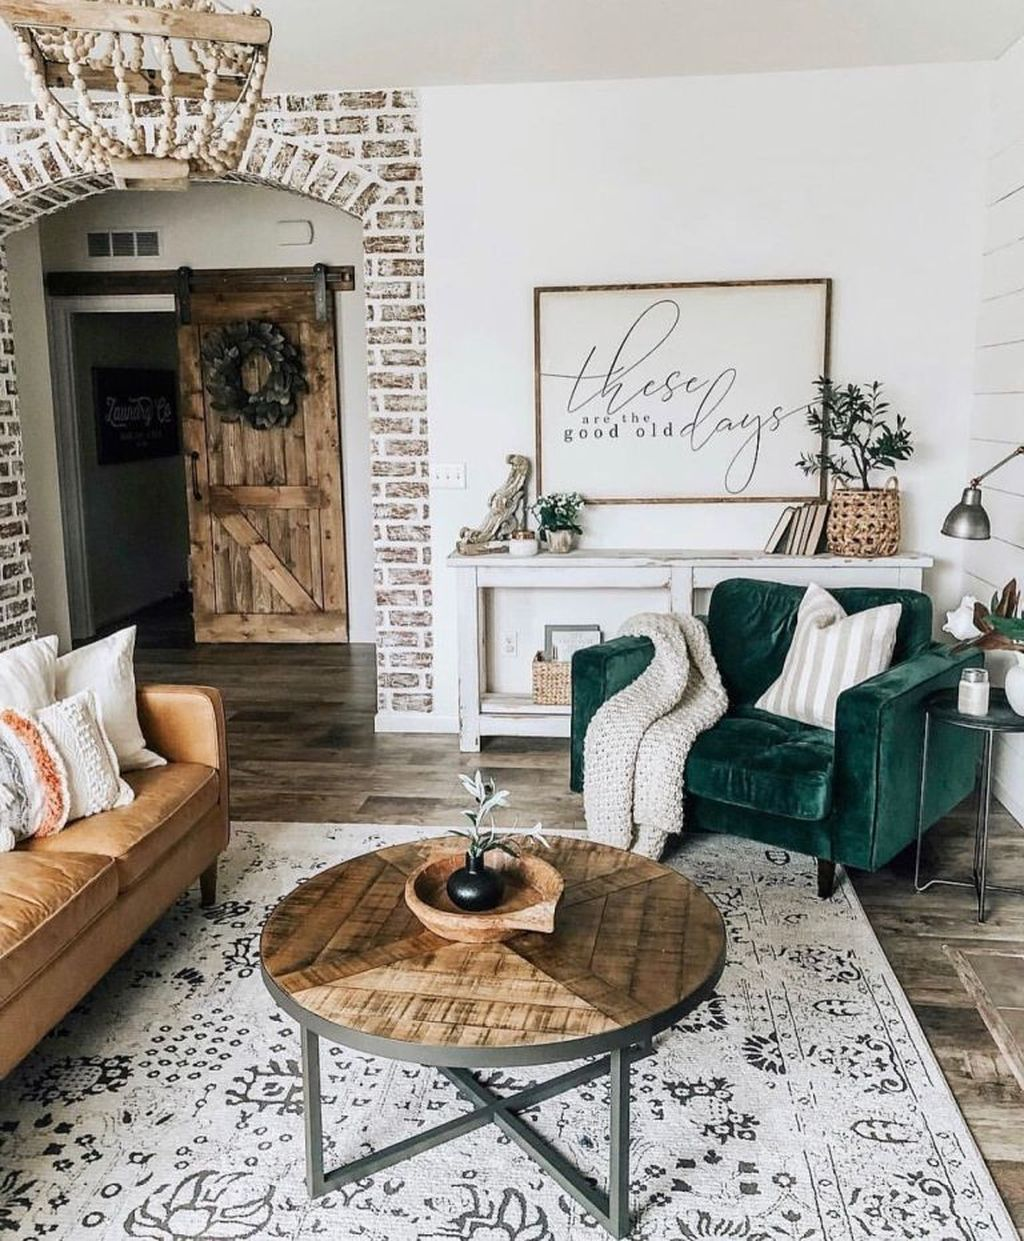 34 Comfy Living Room Decoration Ideas With Farmhouse Style and some velvety details This emerald green velvet sofa amazingly fit in the farmhouse styled decorated living...